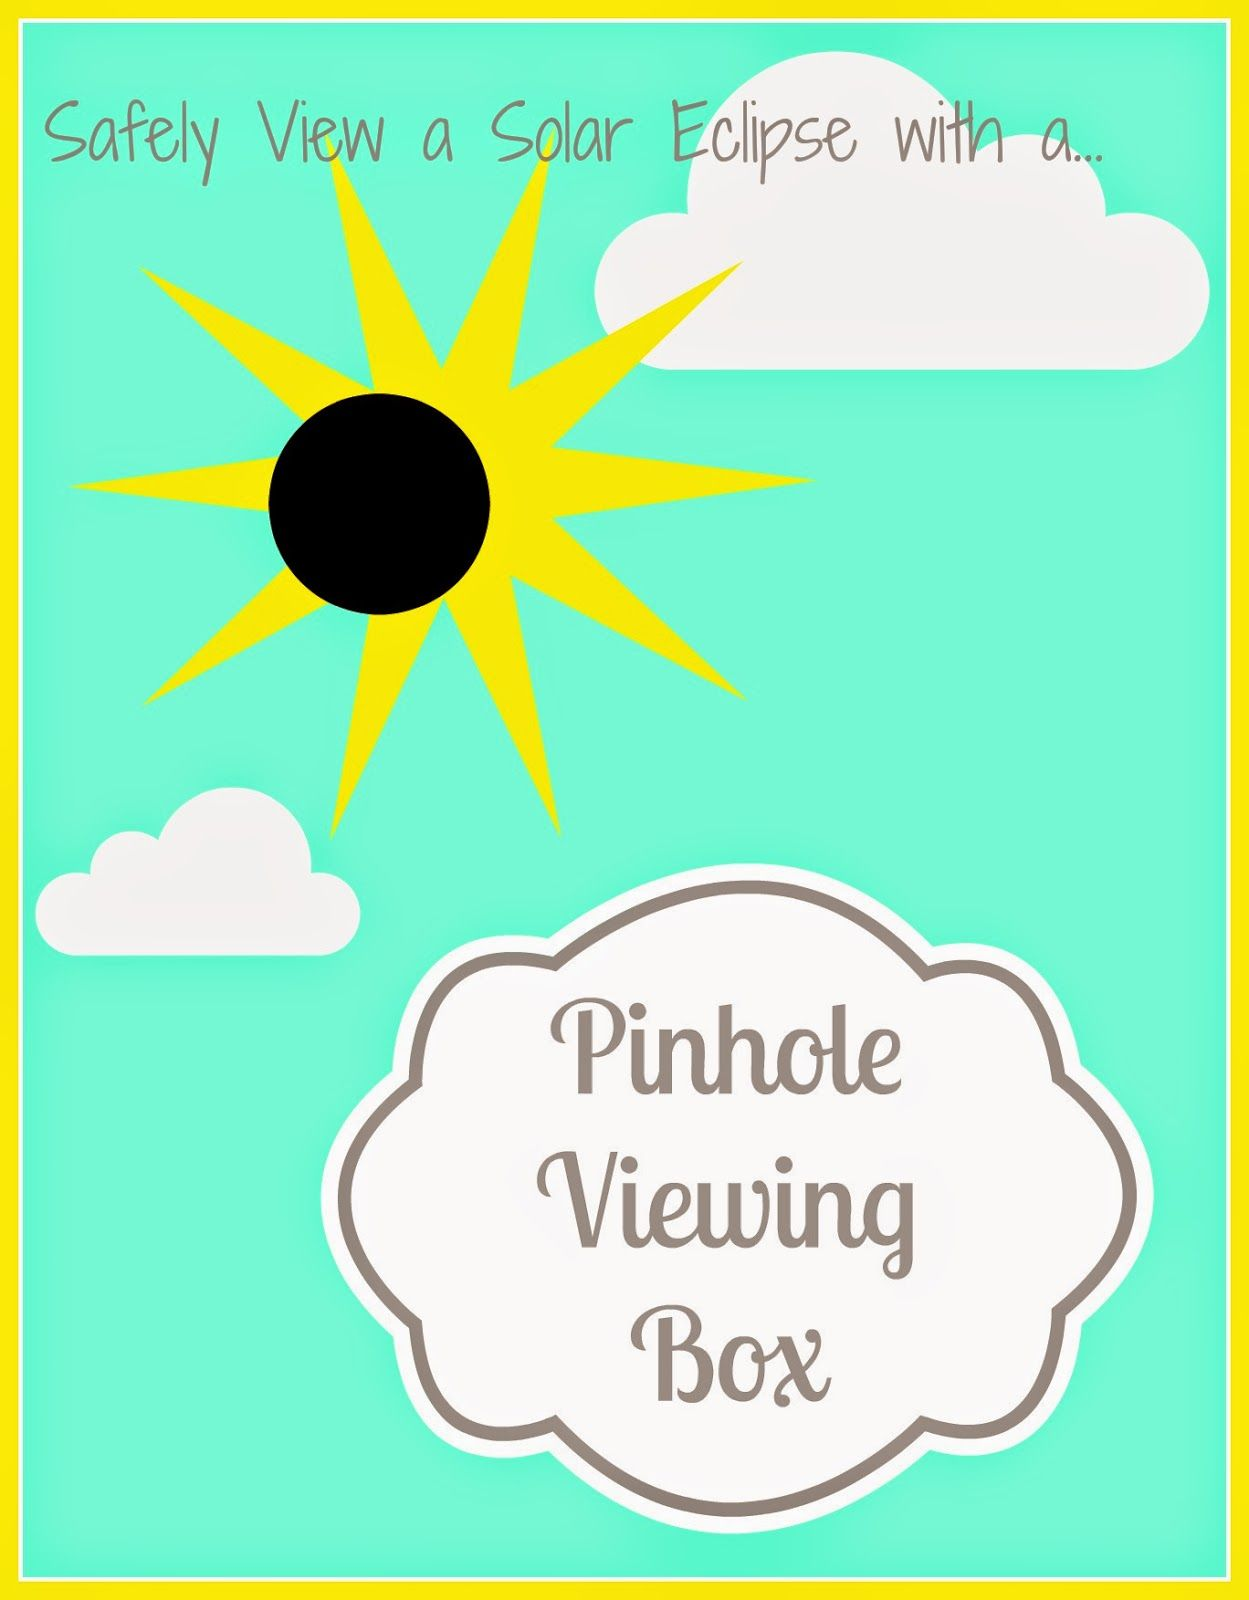 Make A Pinhole Viewing Box To Safely Watch The Solar